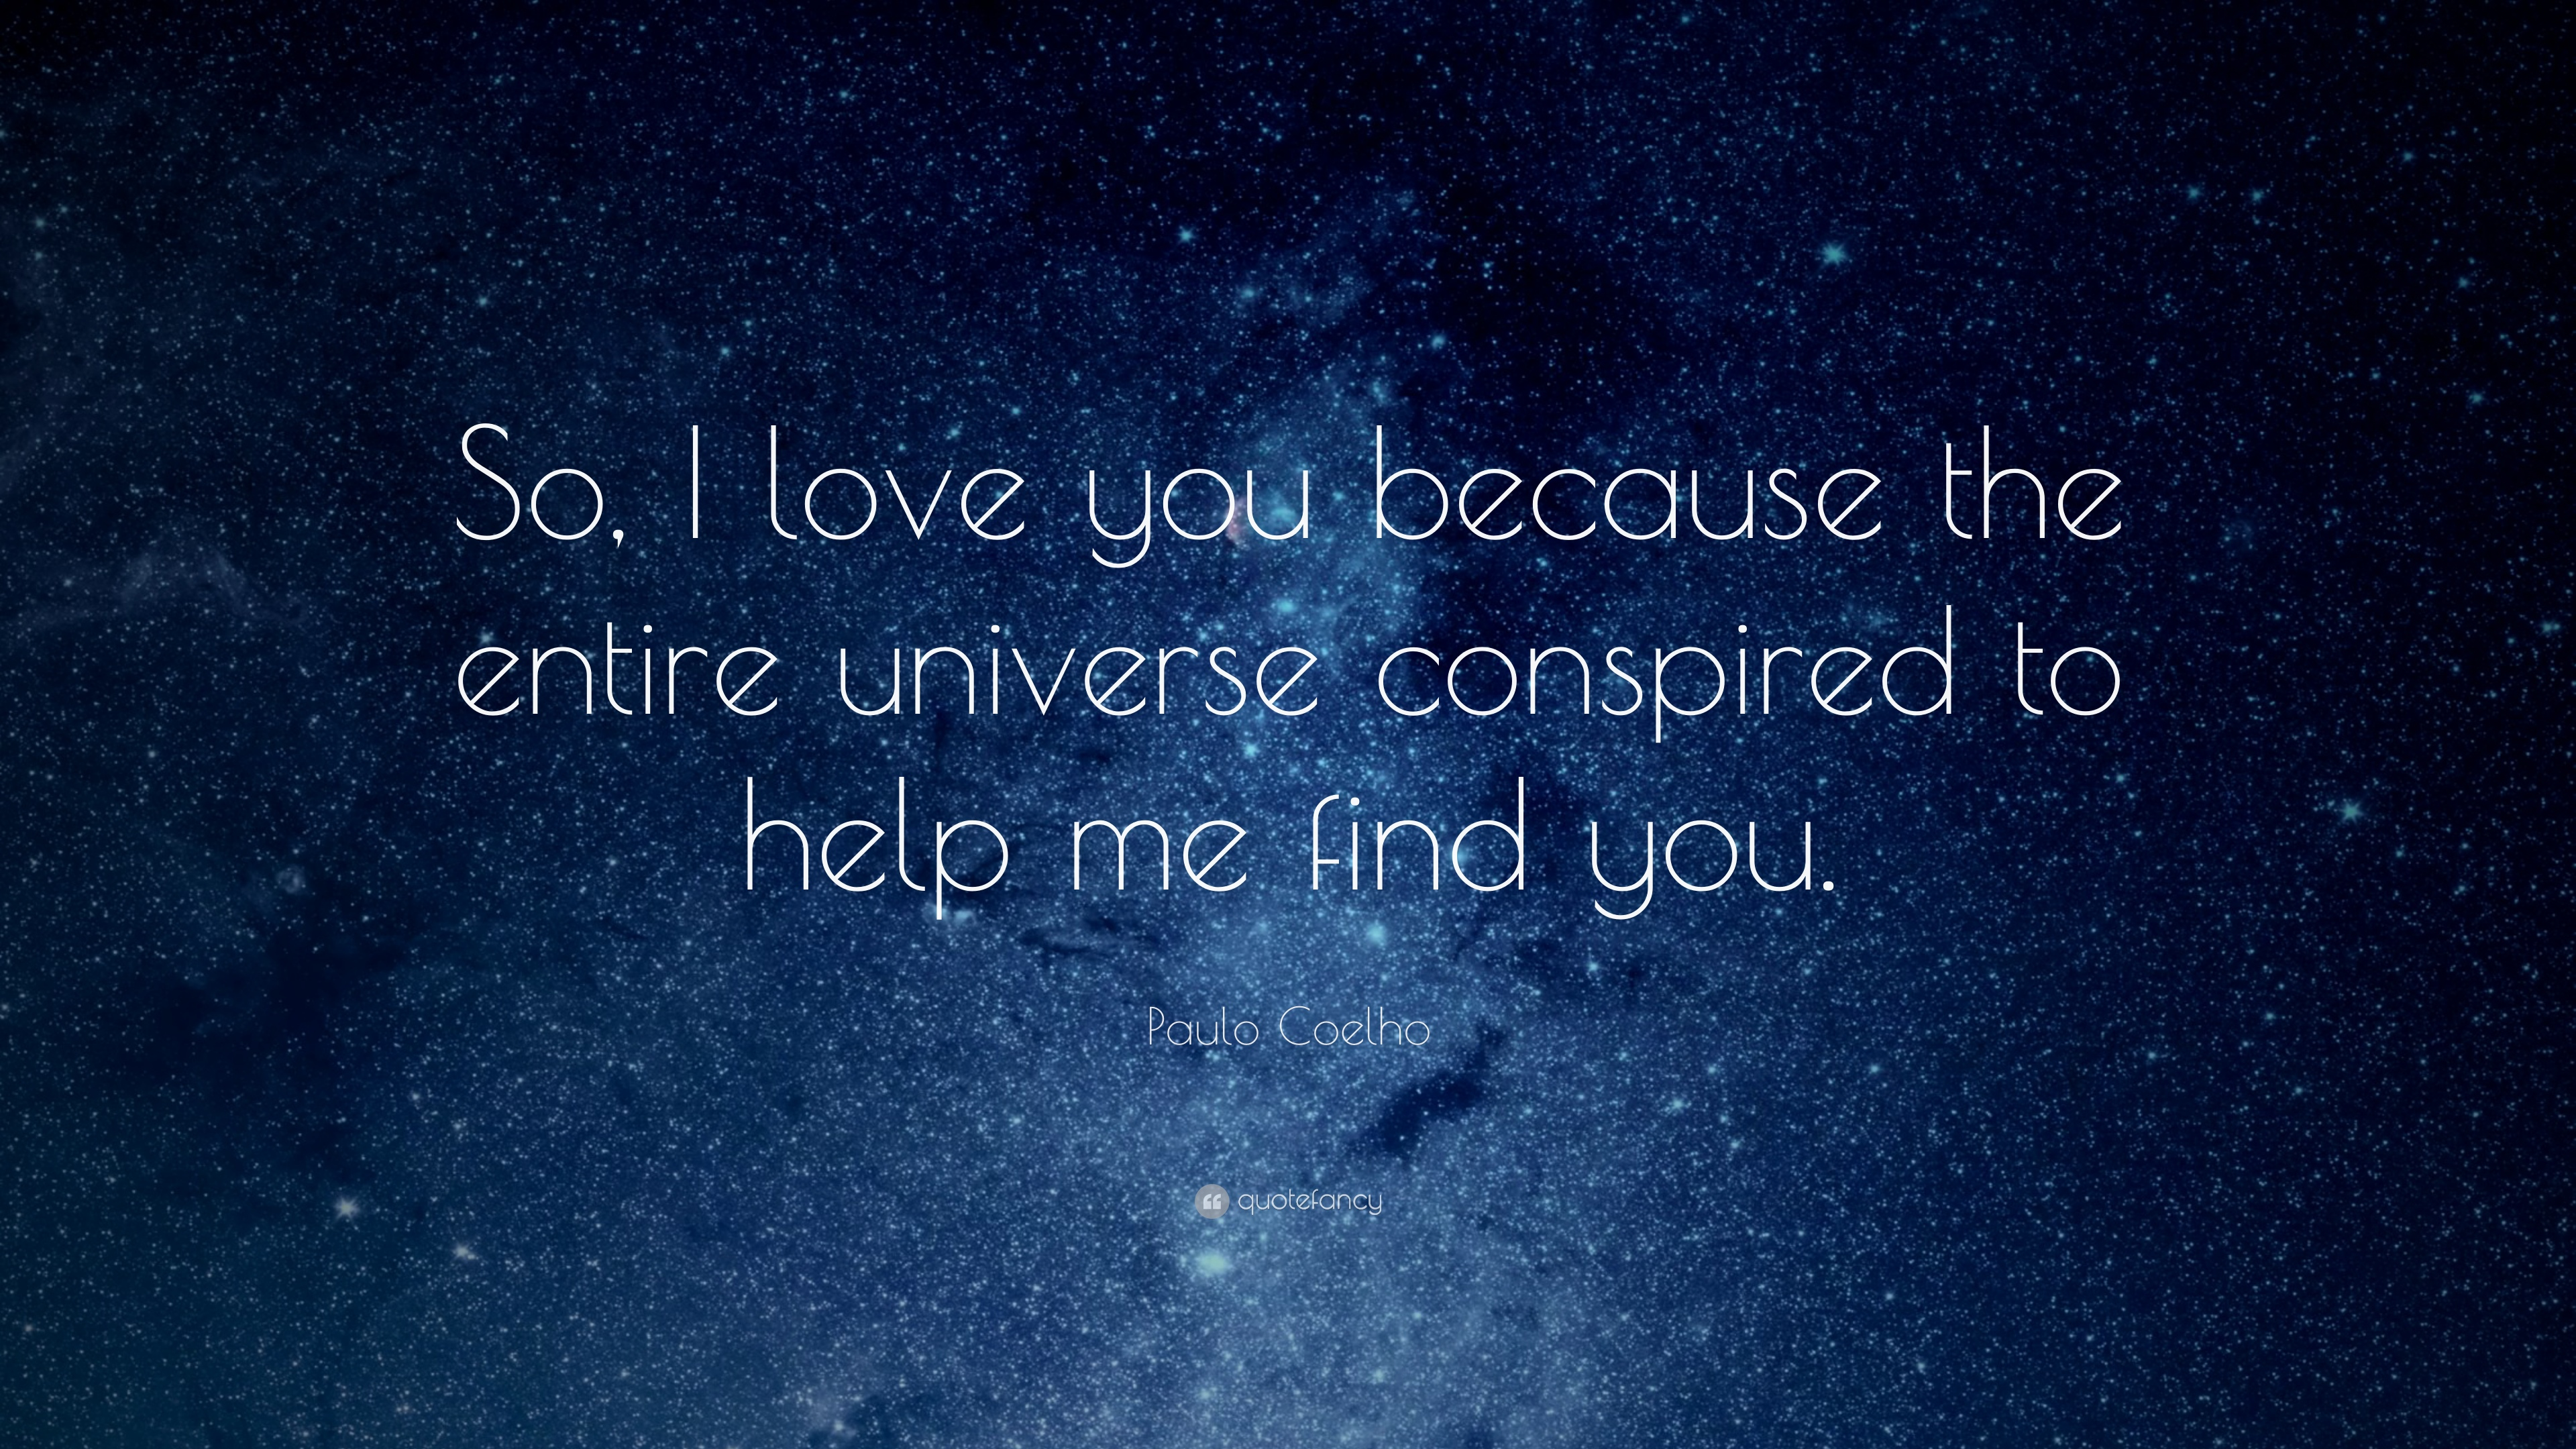 Paulo Coelho Quote: U201cSo, I Love You Because The Entire Universe Conspired To